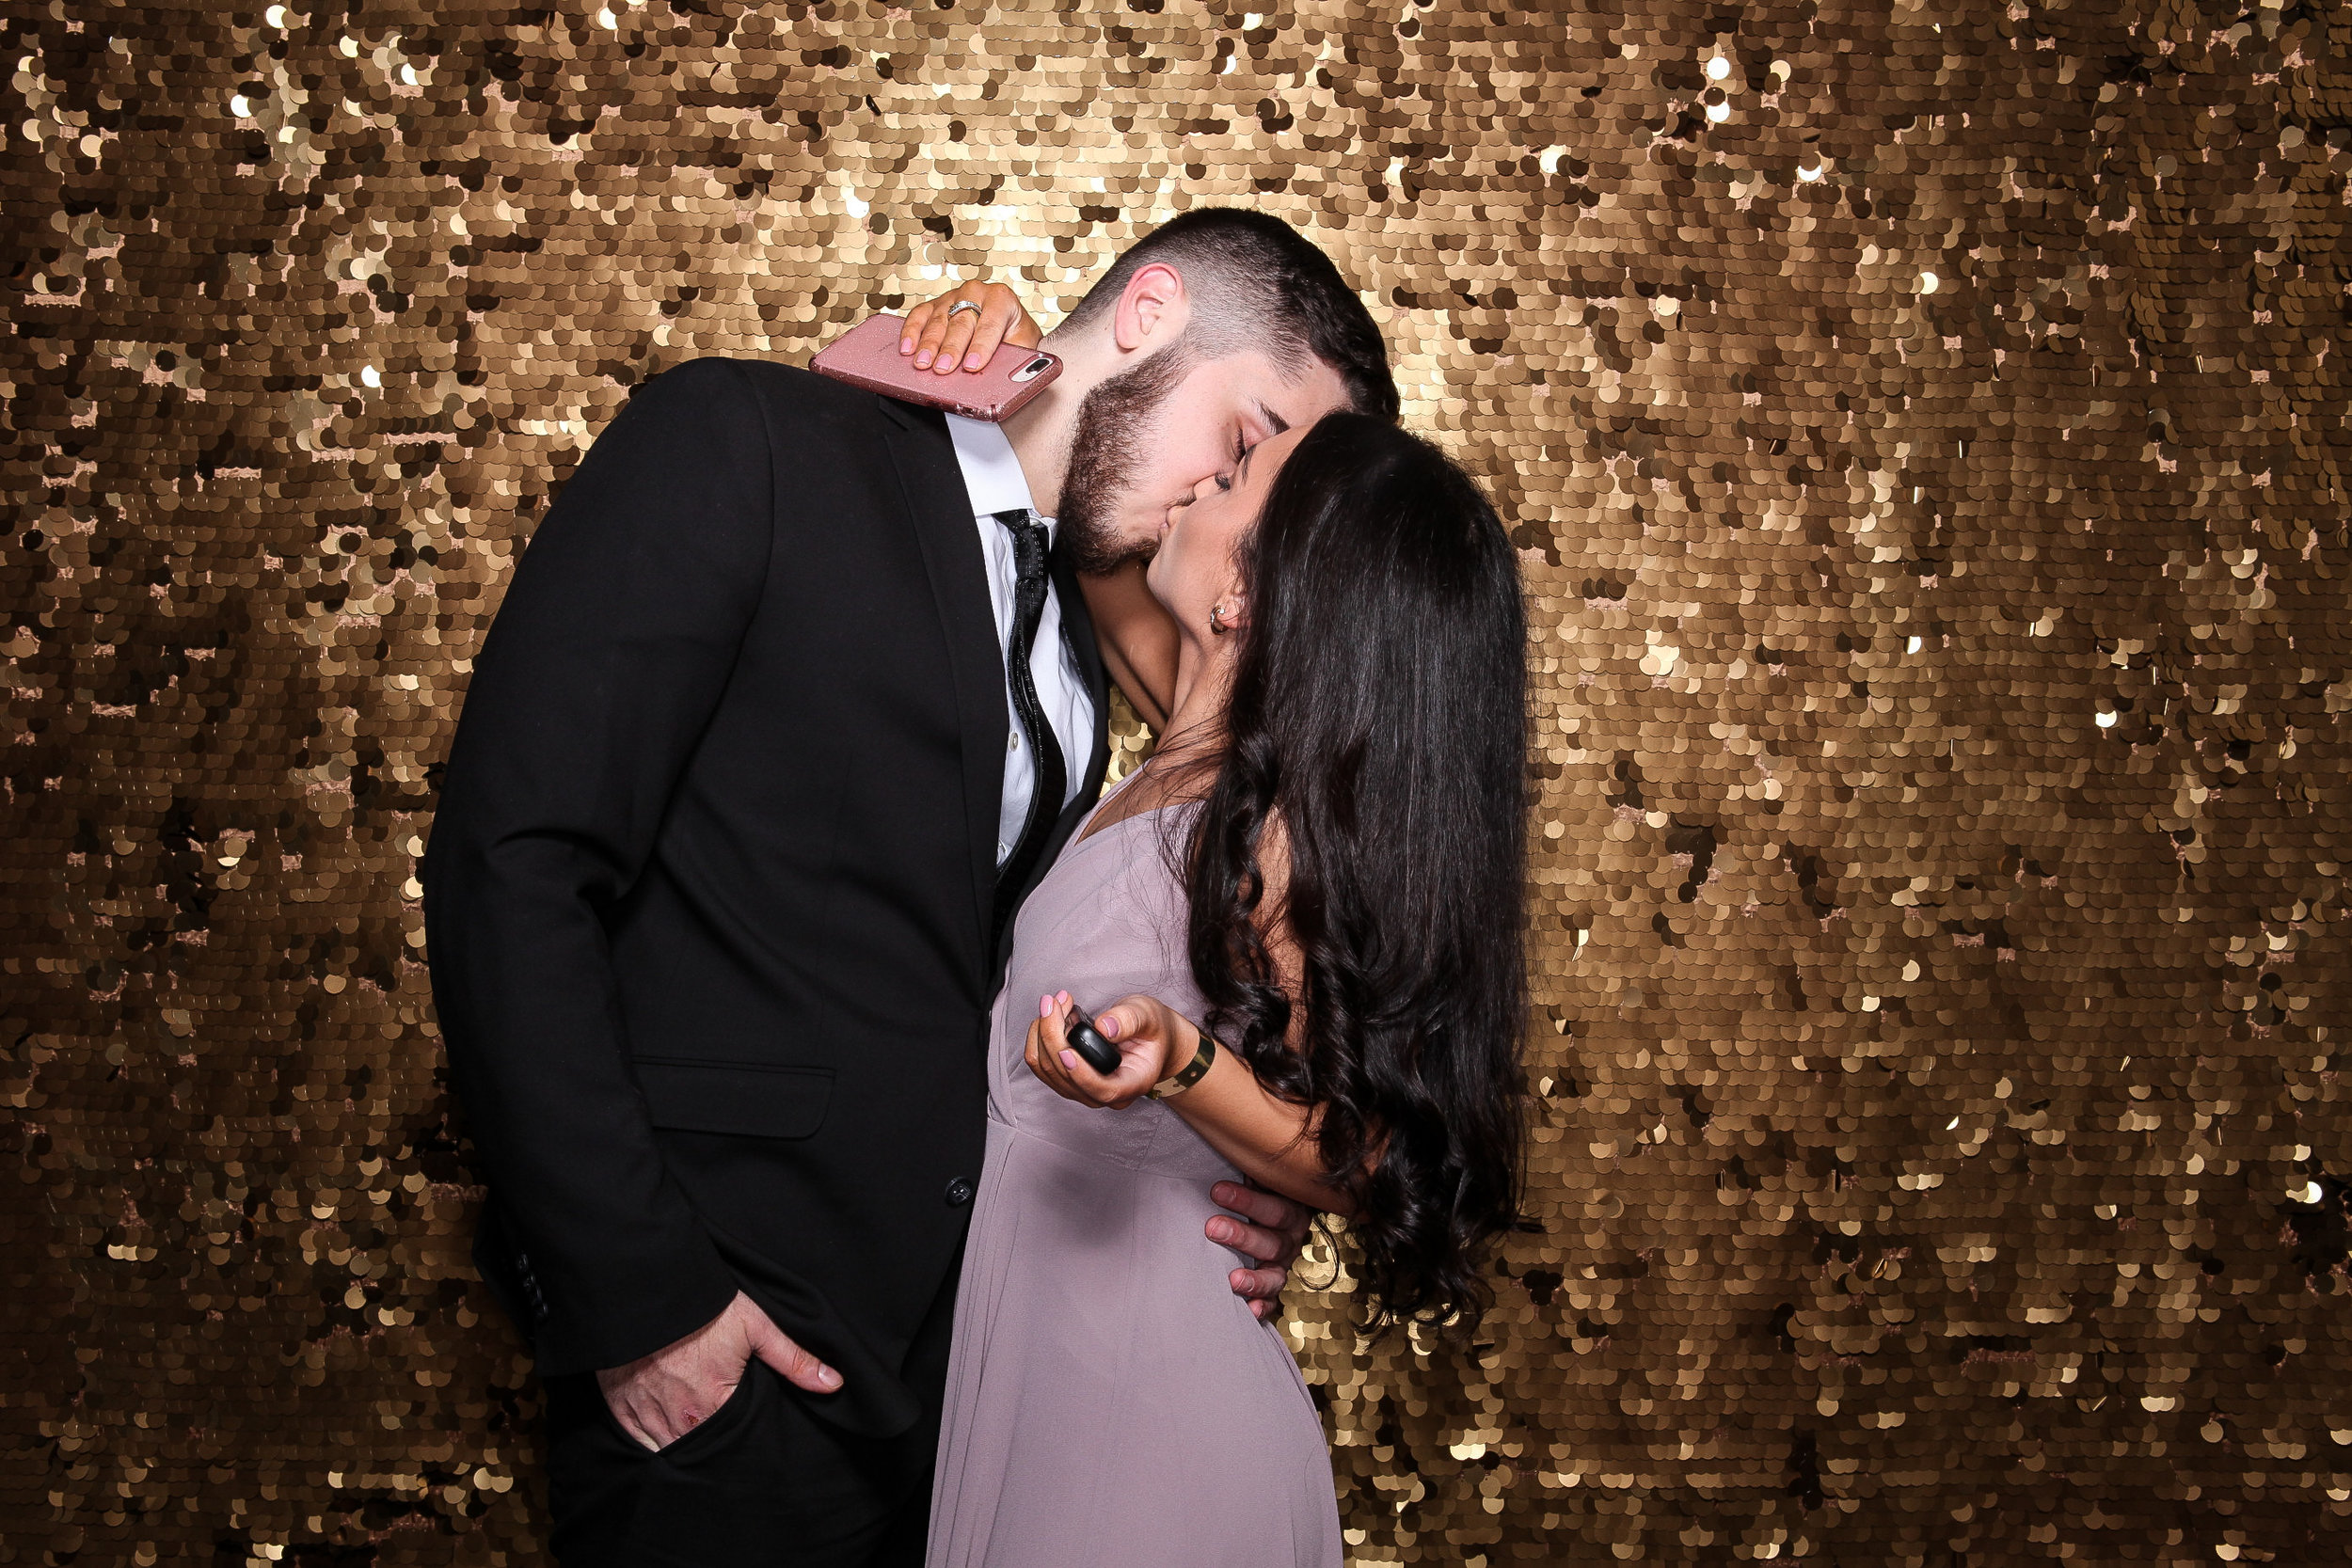 20190503_Adelphi_Senior_Formal-090.jpg